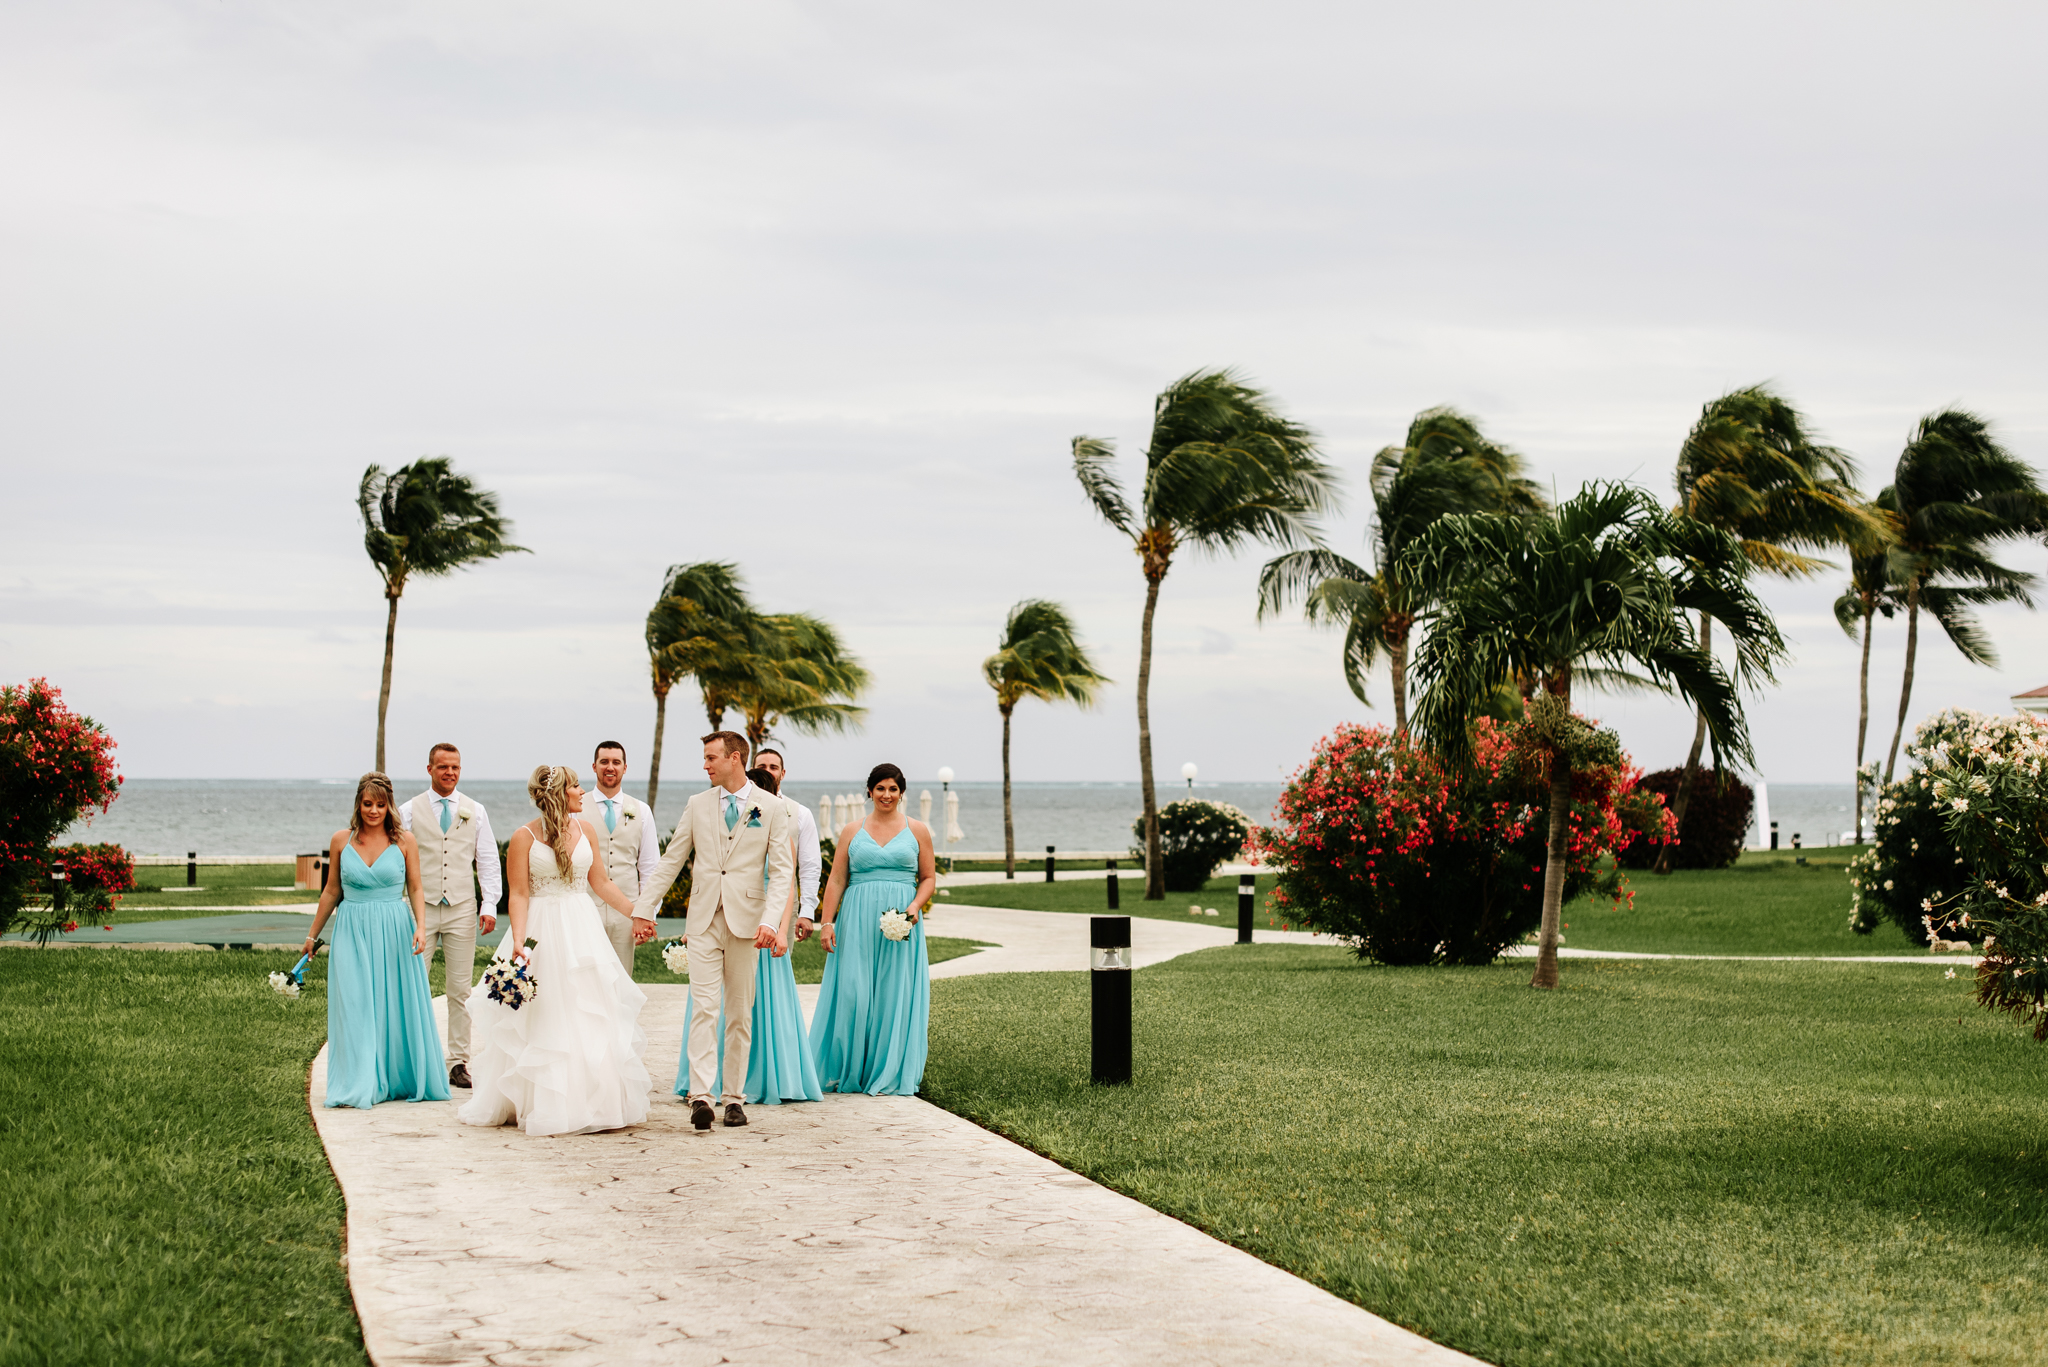 love-and-be-loved-photography-destination-wedding-photographer-cancun-mexico-jessica-jon-image-picture-photo-117.jpg